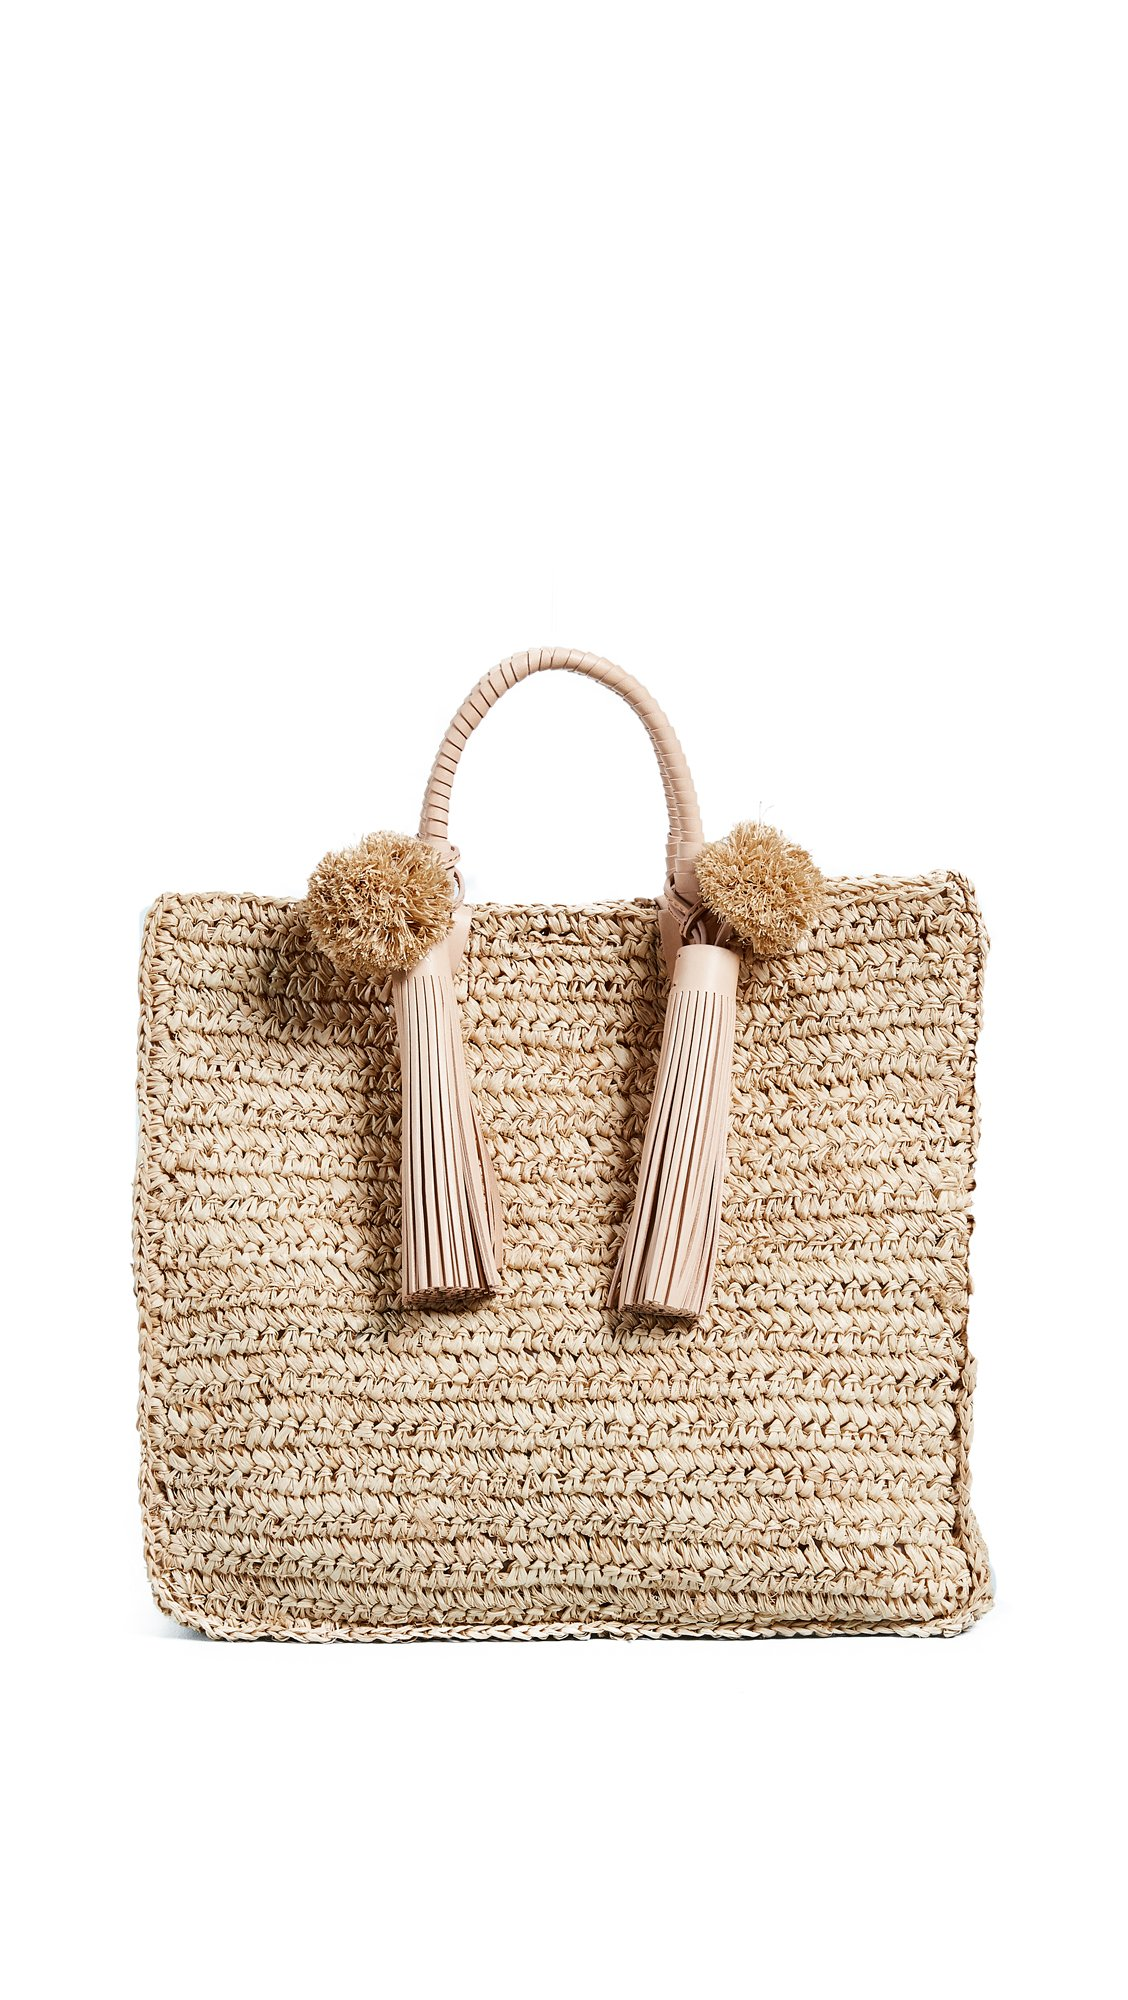 Loeffler Randall Women's Straw Travel Tote, Rainbow, One Size by Loeffler Randall